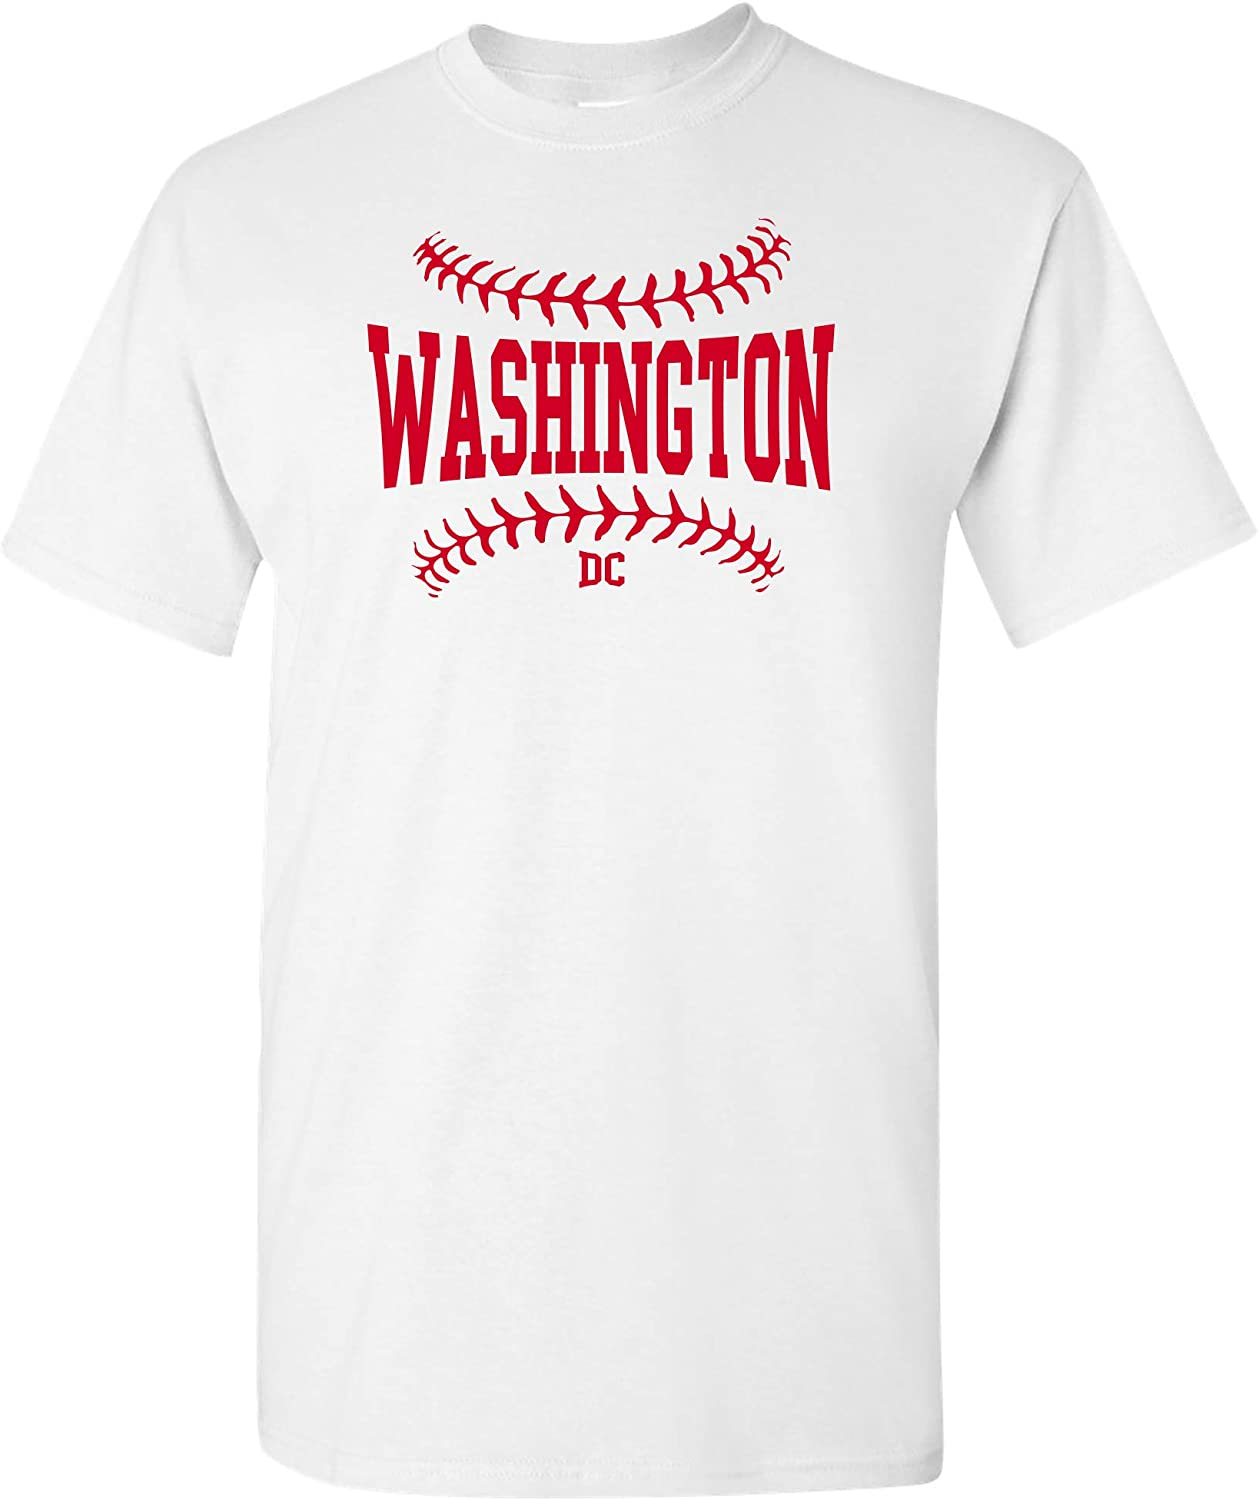 Baseball Laces - Pitcher, Team Sport Graphic T-Shirt